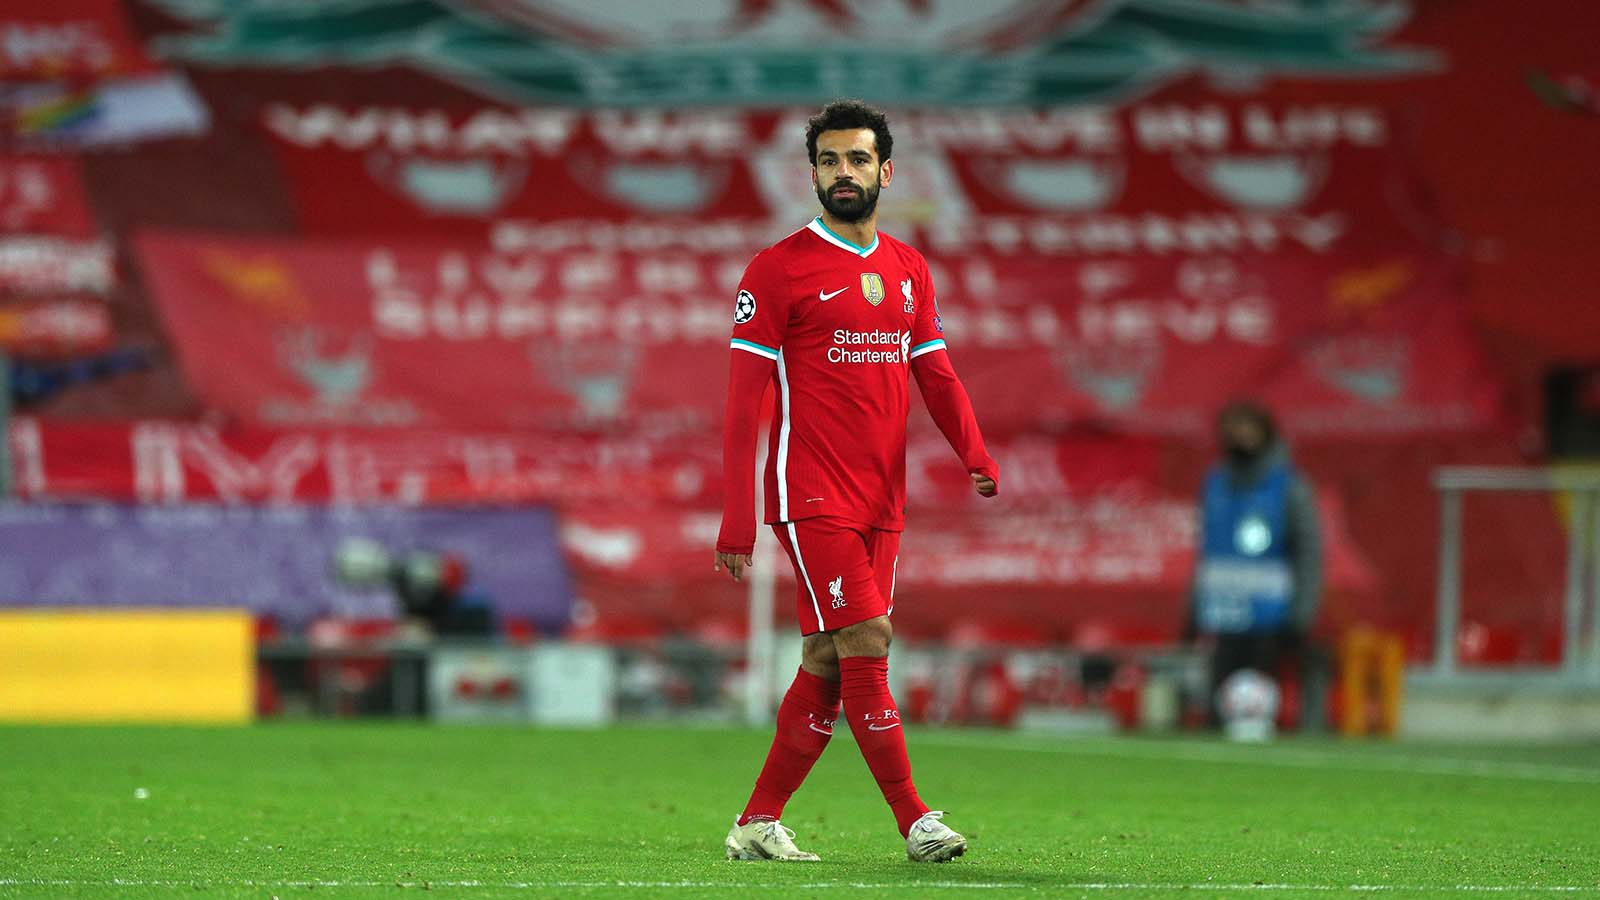 Mohamed Salah of Liverpool looks on during the UEFA Champions League Group D stage match between Liverpool FC and FC Midtjylland at Anfield on October 27, in Liverpool, England.